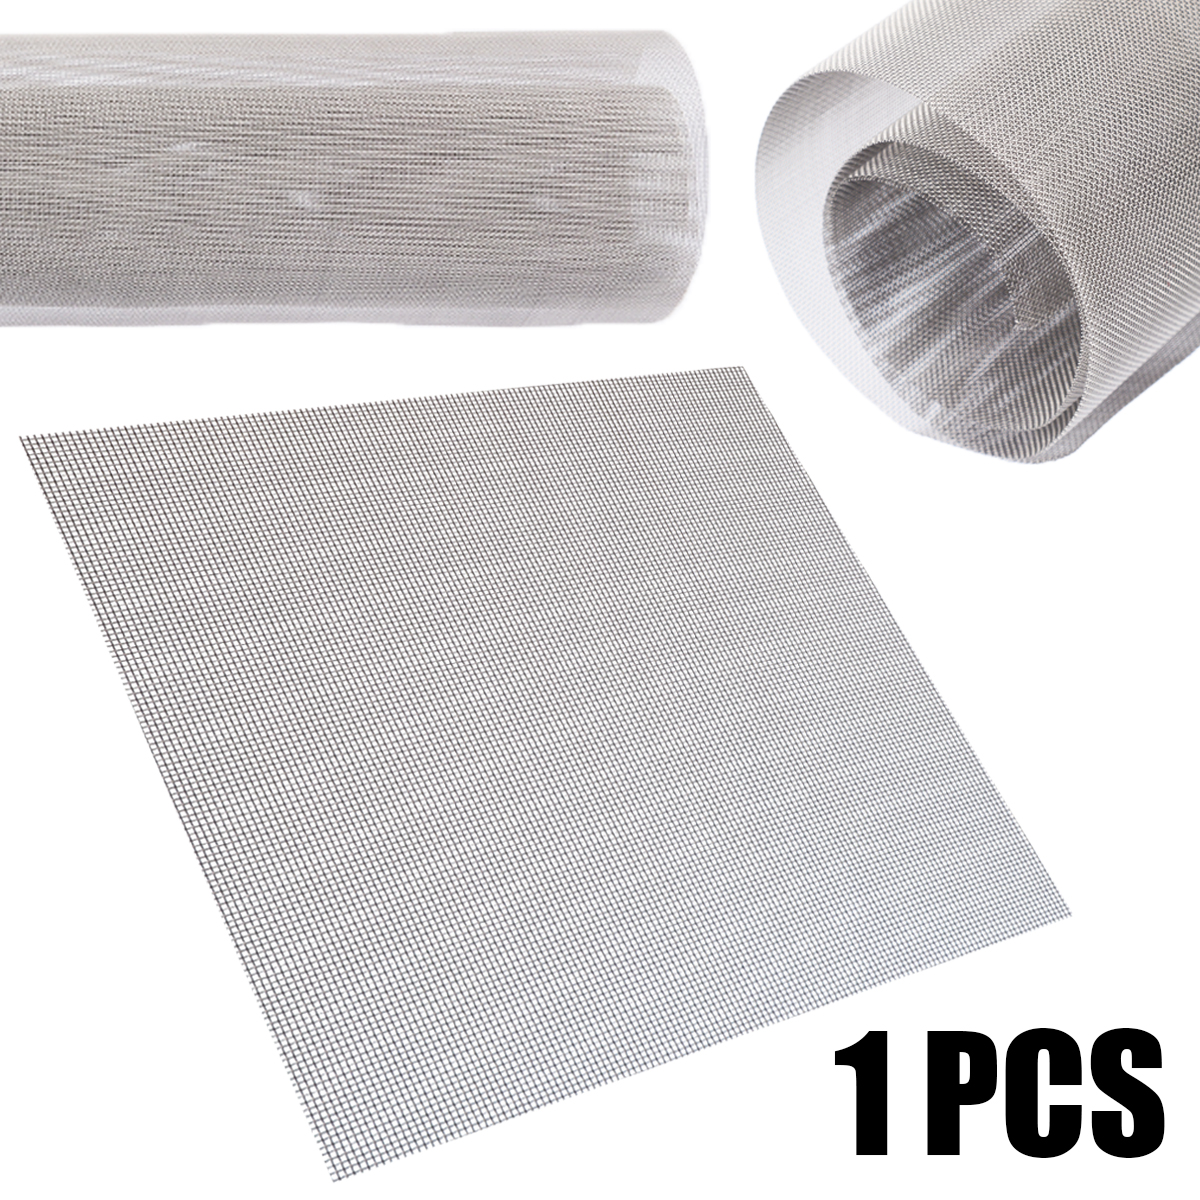 1Pcs 60 Mesh 304 Stainless Steel Filtration Woven Wire Mesh Cloth Screen 30x30cm with Weather Resistance For Industry Tools